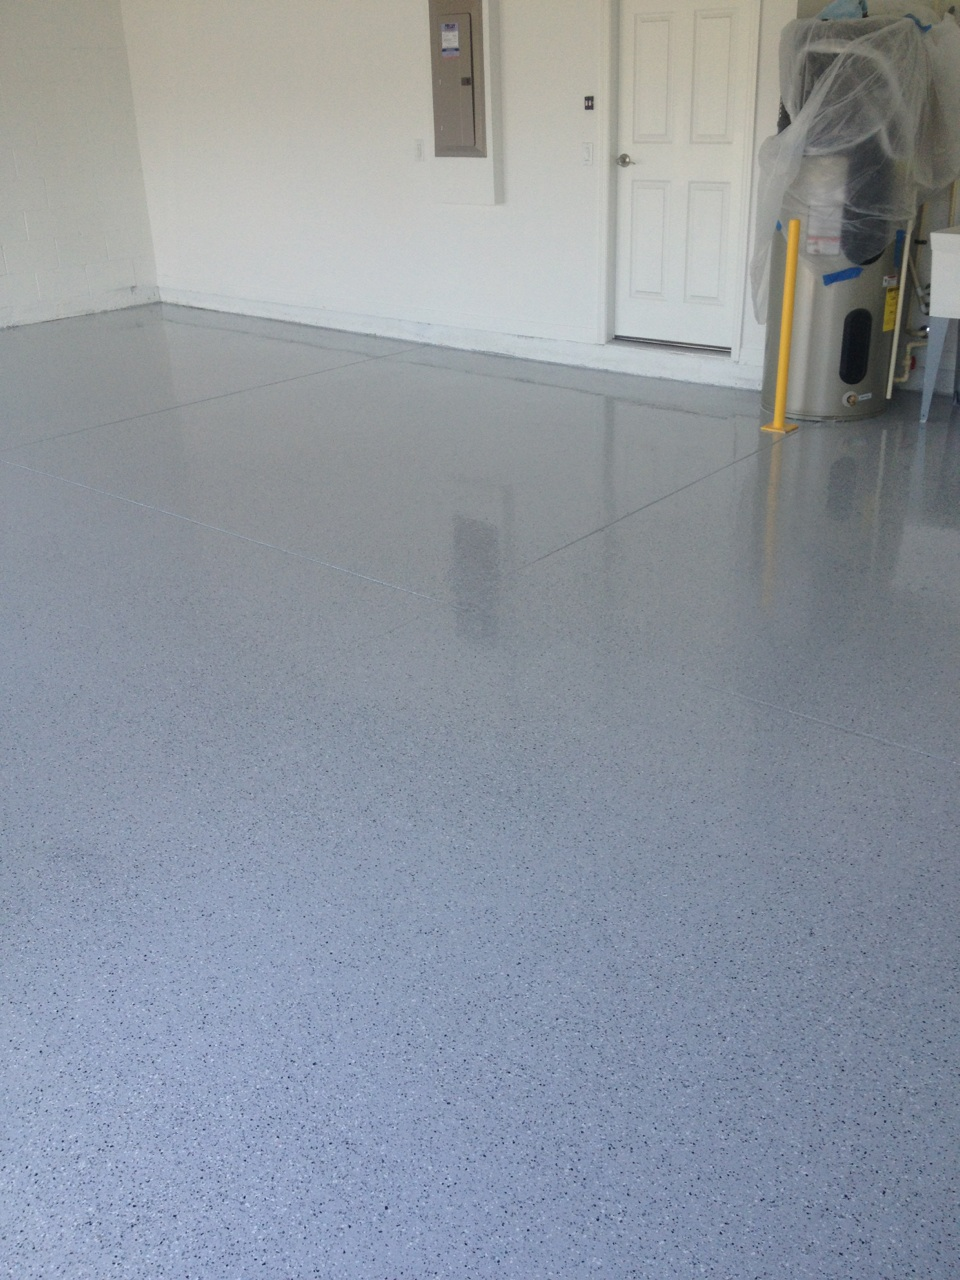 Legacy industrial 39 s blog site 100 percent solids epoxy for 100 epoxy floor coating